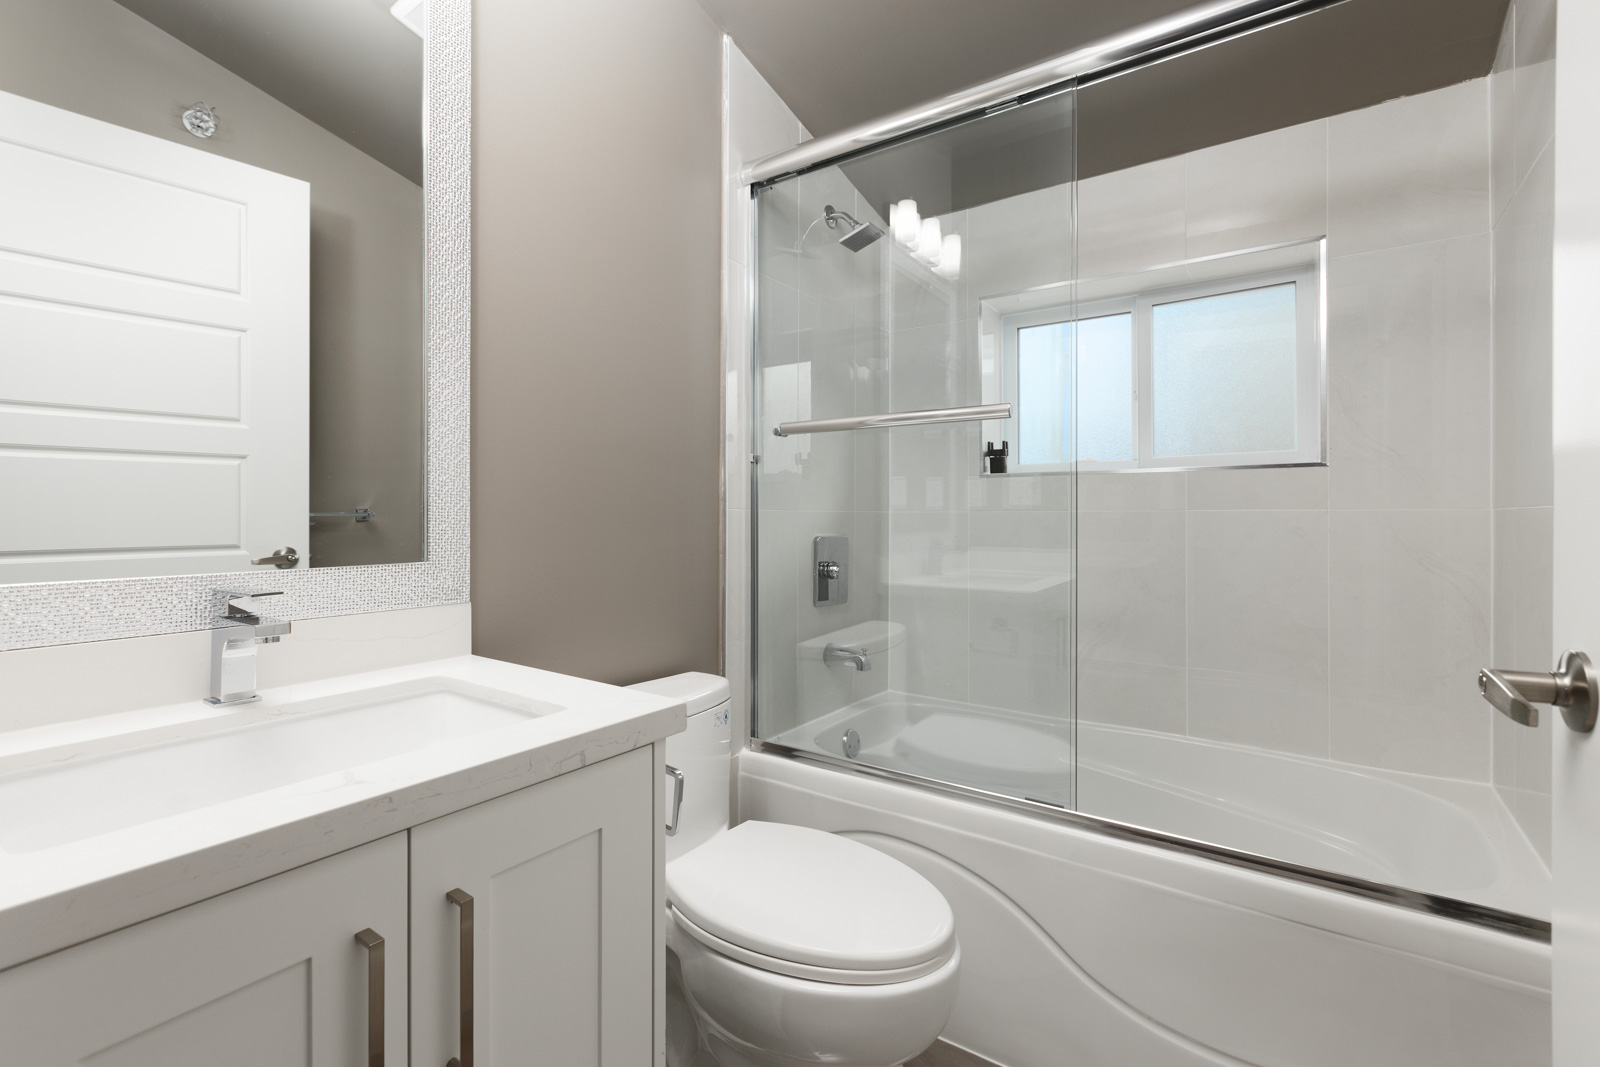 Bathroom with stand up tub and sliding glass shower door inside Vancouver rental home.